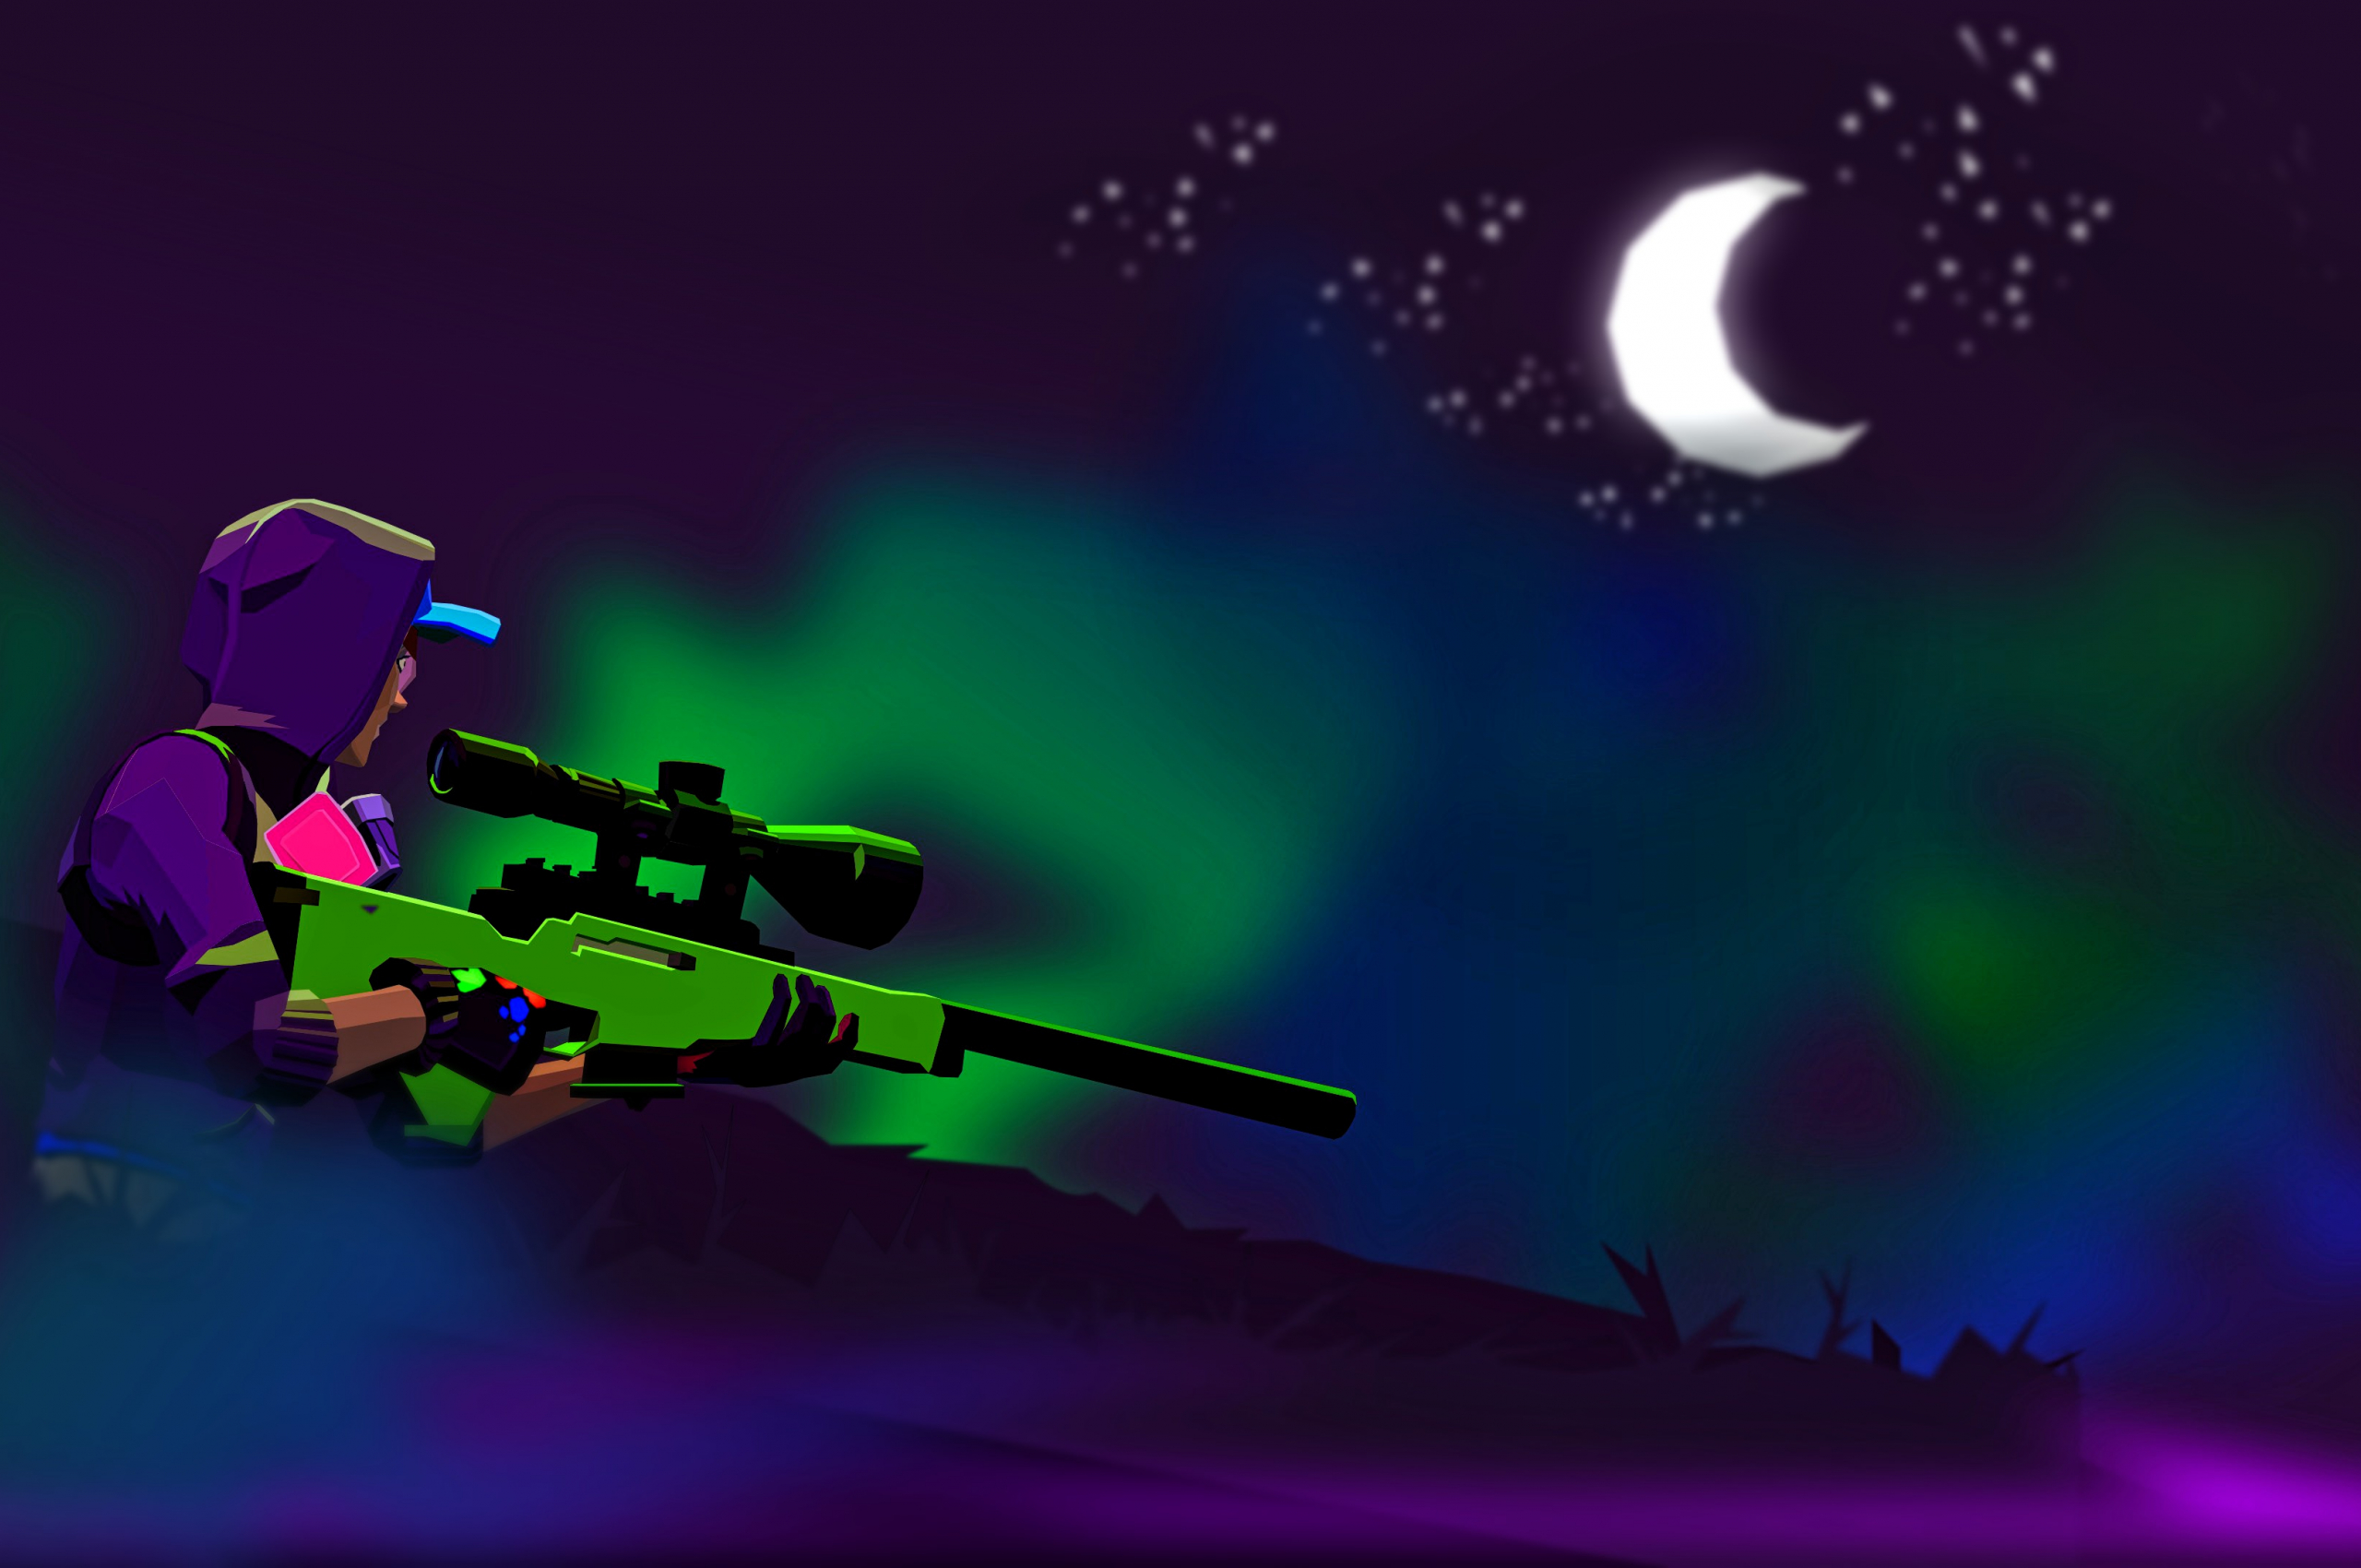 Free Download Nighttime Neon Wallpaper Specs In Comments Imgur 4096x2160 For Your Desktop Mobile Tablet Explore 21 Kitbash Fortnite Wallpapers Kitbash Fortnite Wallpapers Fortnite Wallpapers Fortnite Wallpaper